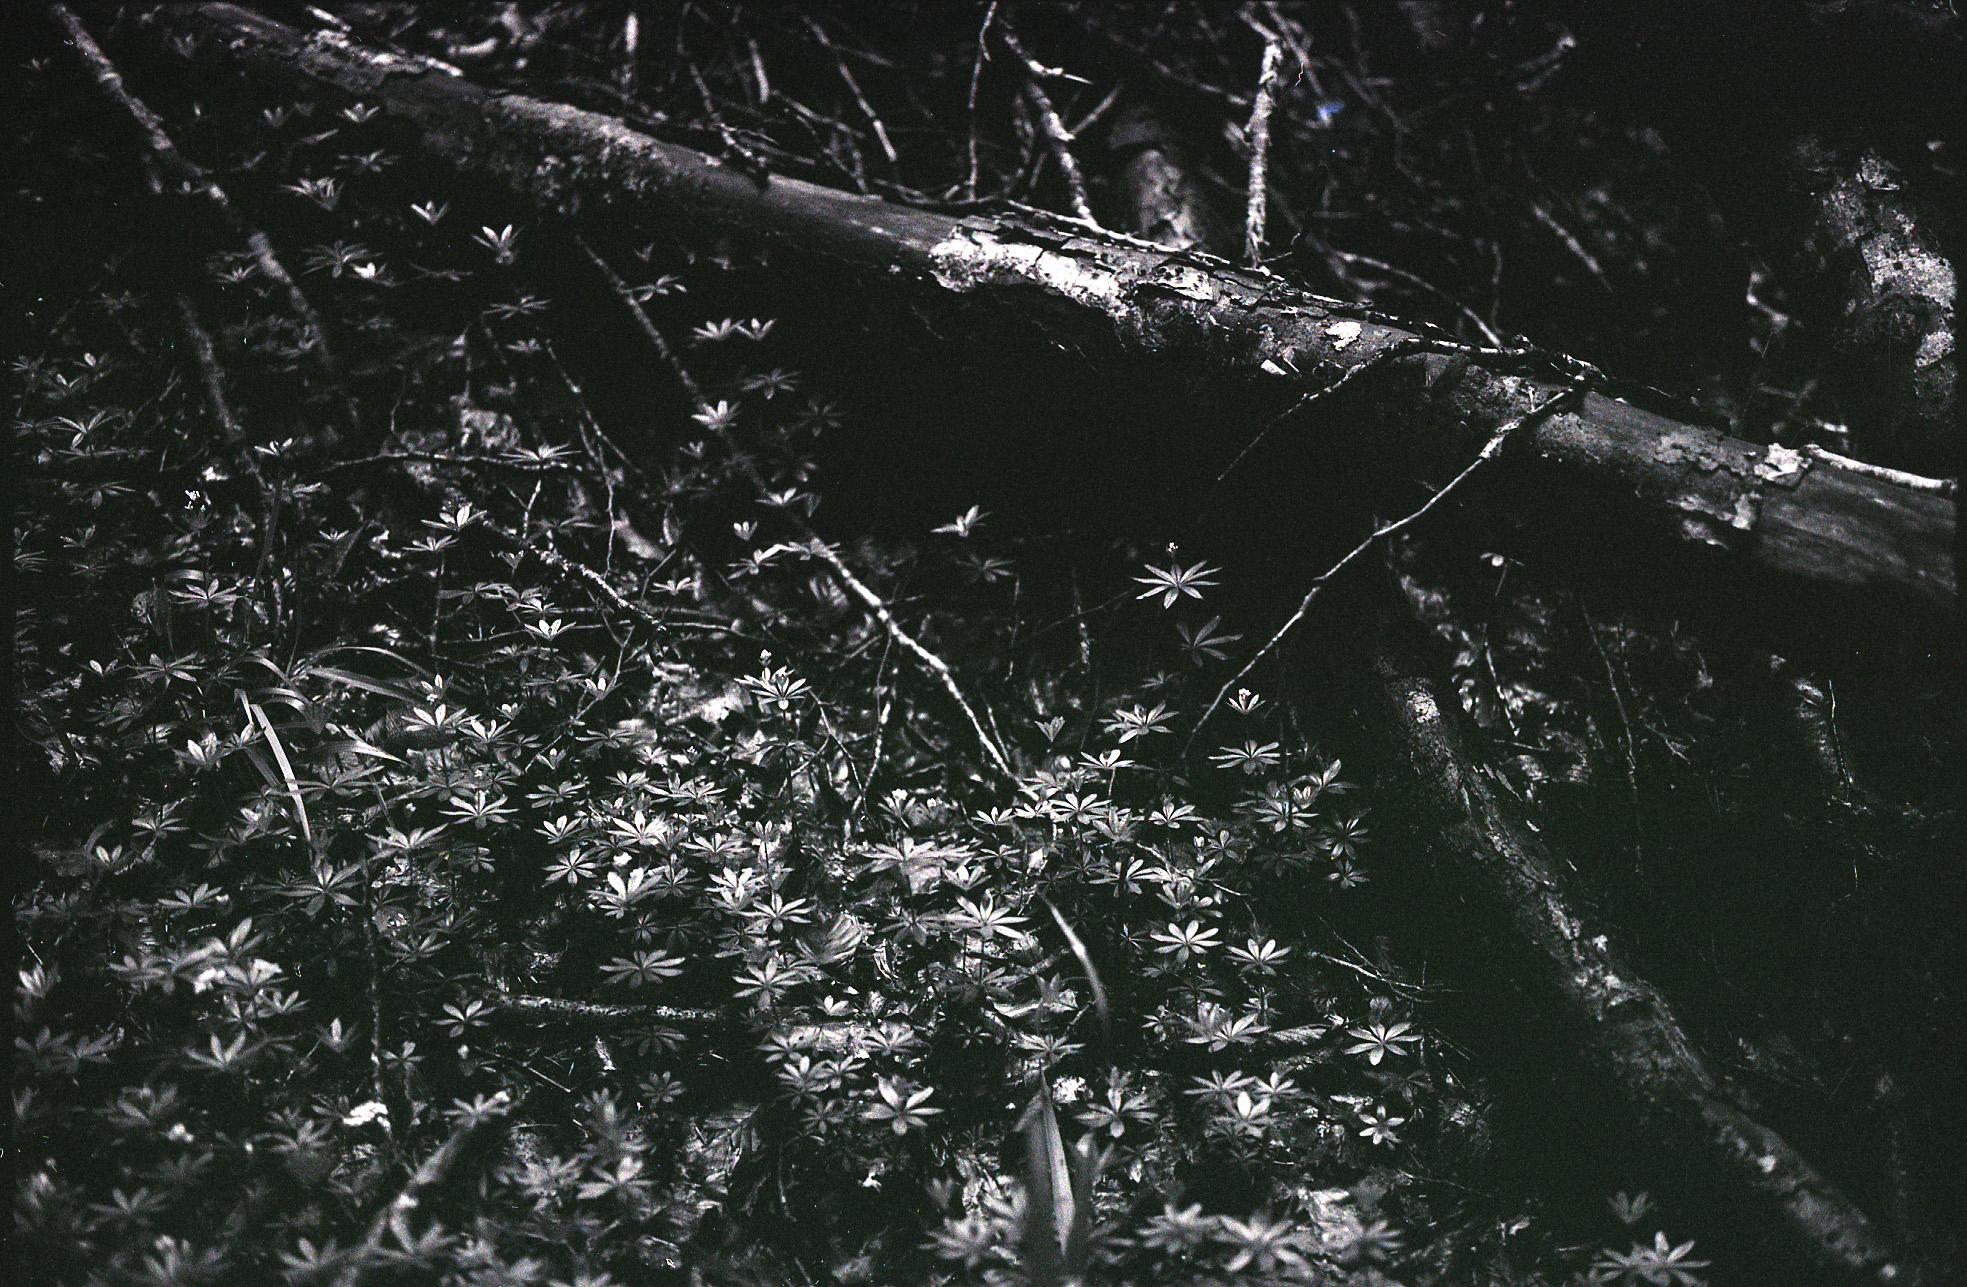 Umbra Means Shadow, Umbra Forest Floor, Italy